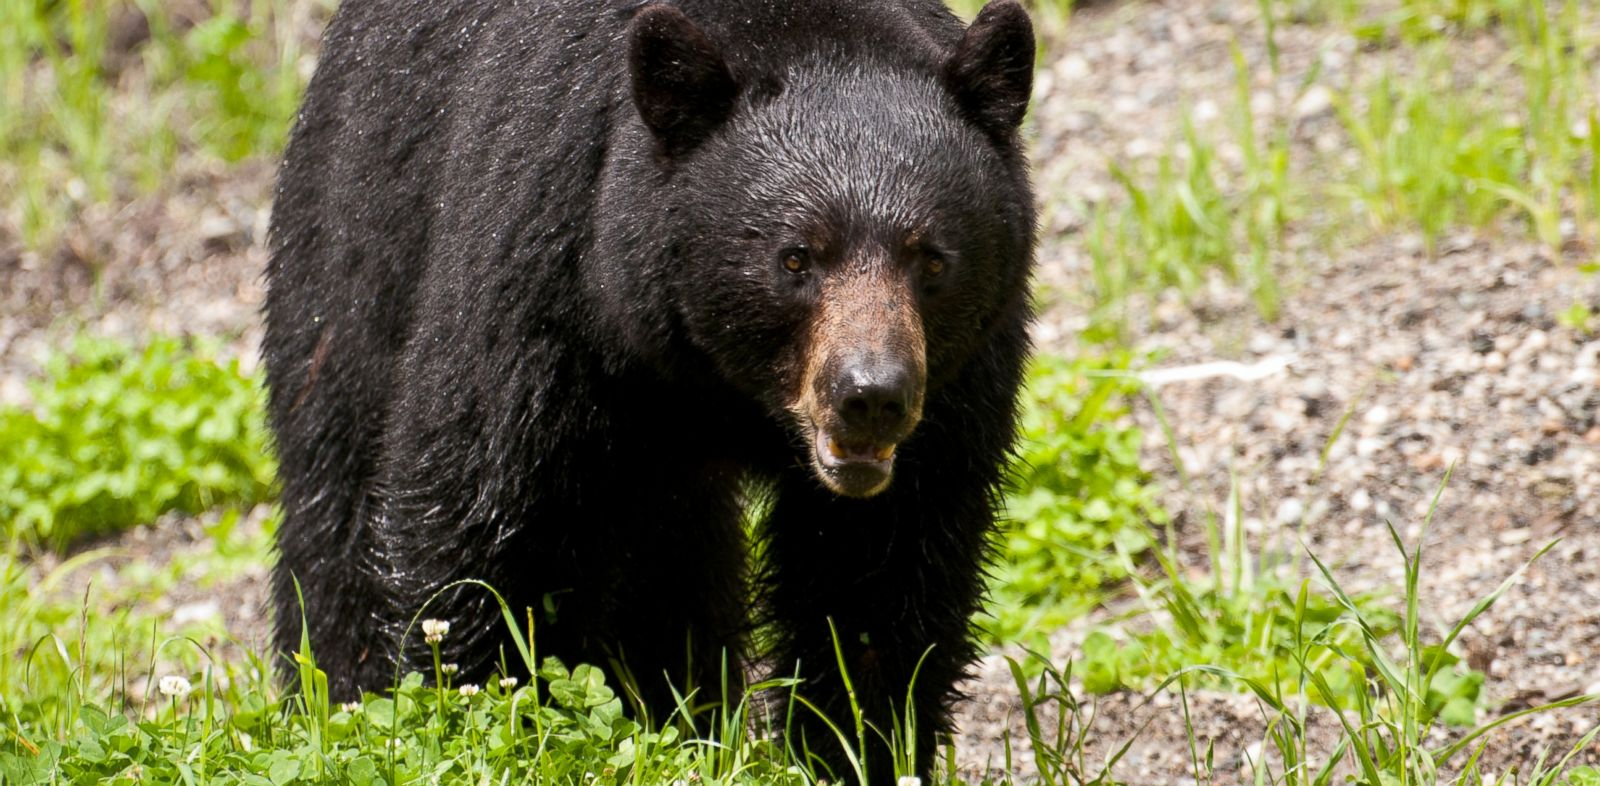 PHOTO: Darsh Patel, 22, of Edison, was fatally mauled by a bear late Sunday afternoon in West Milford, NJaccording to authorities.